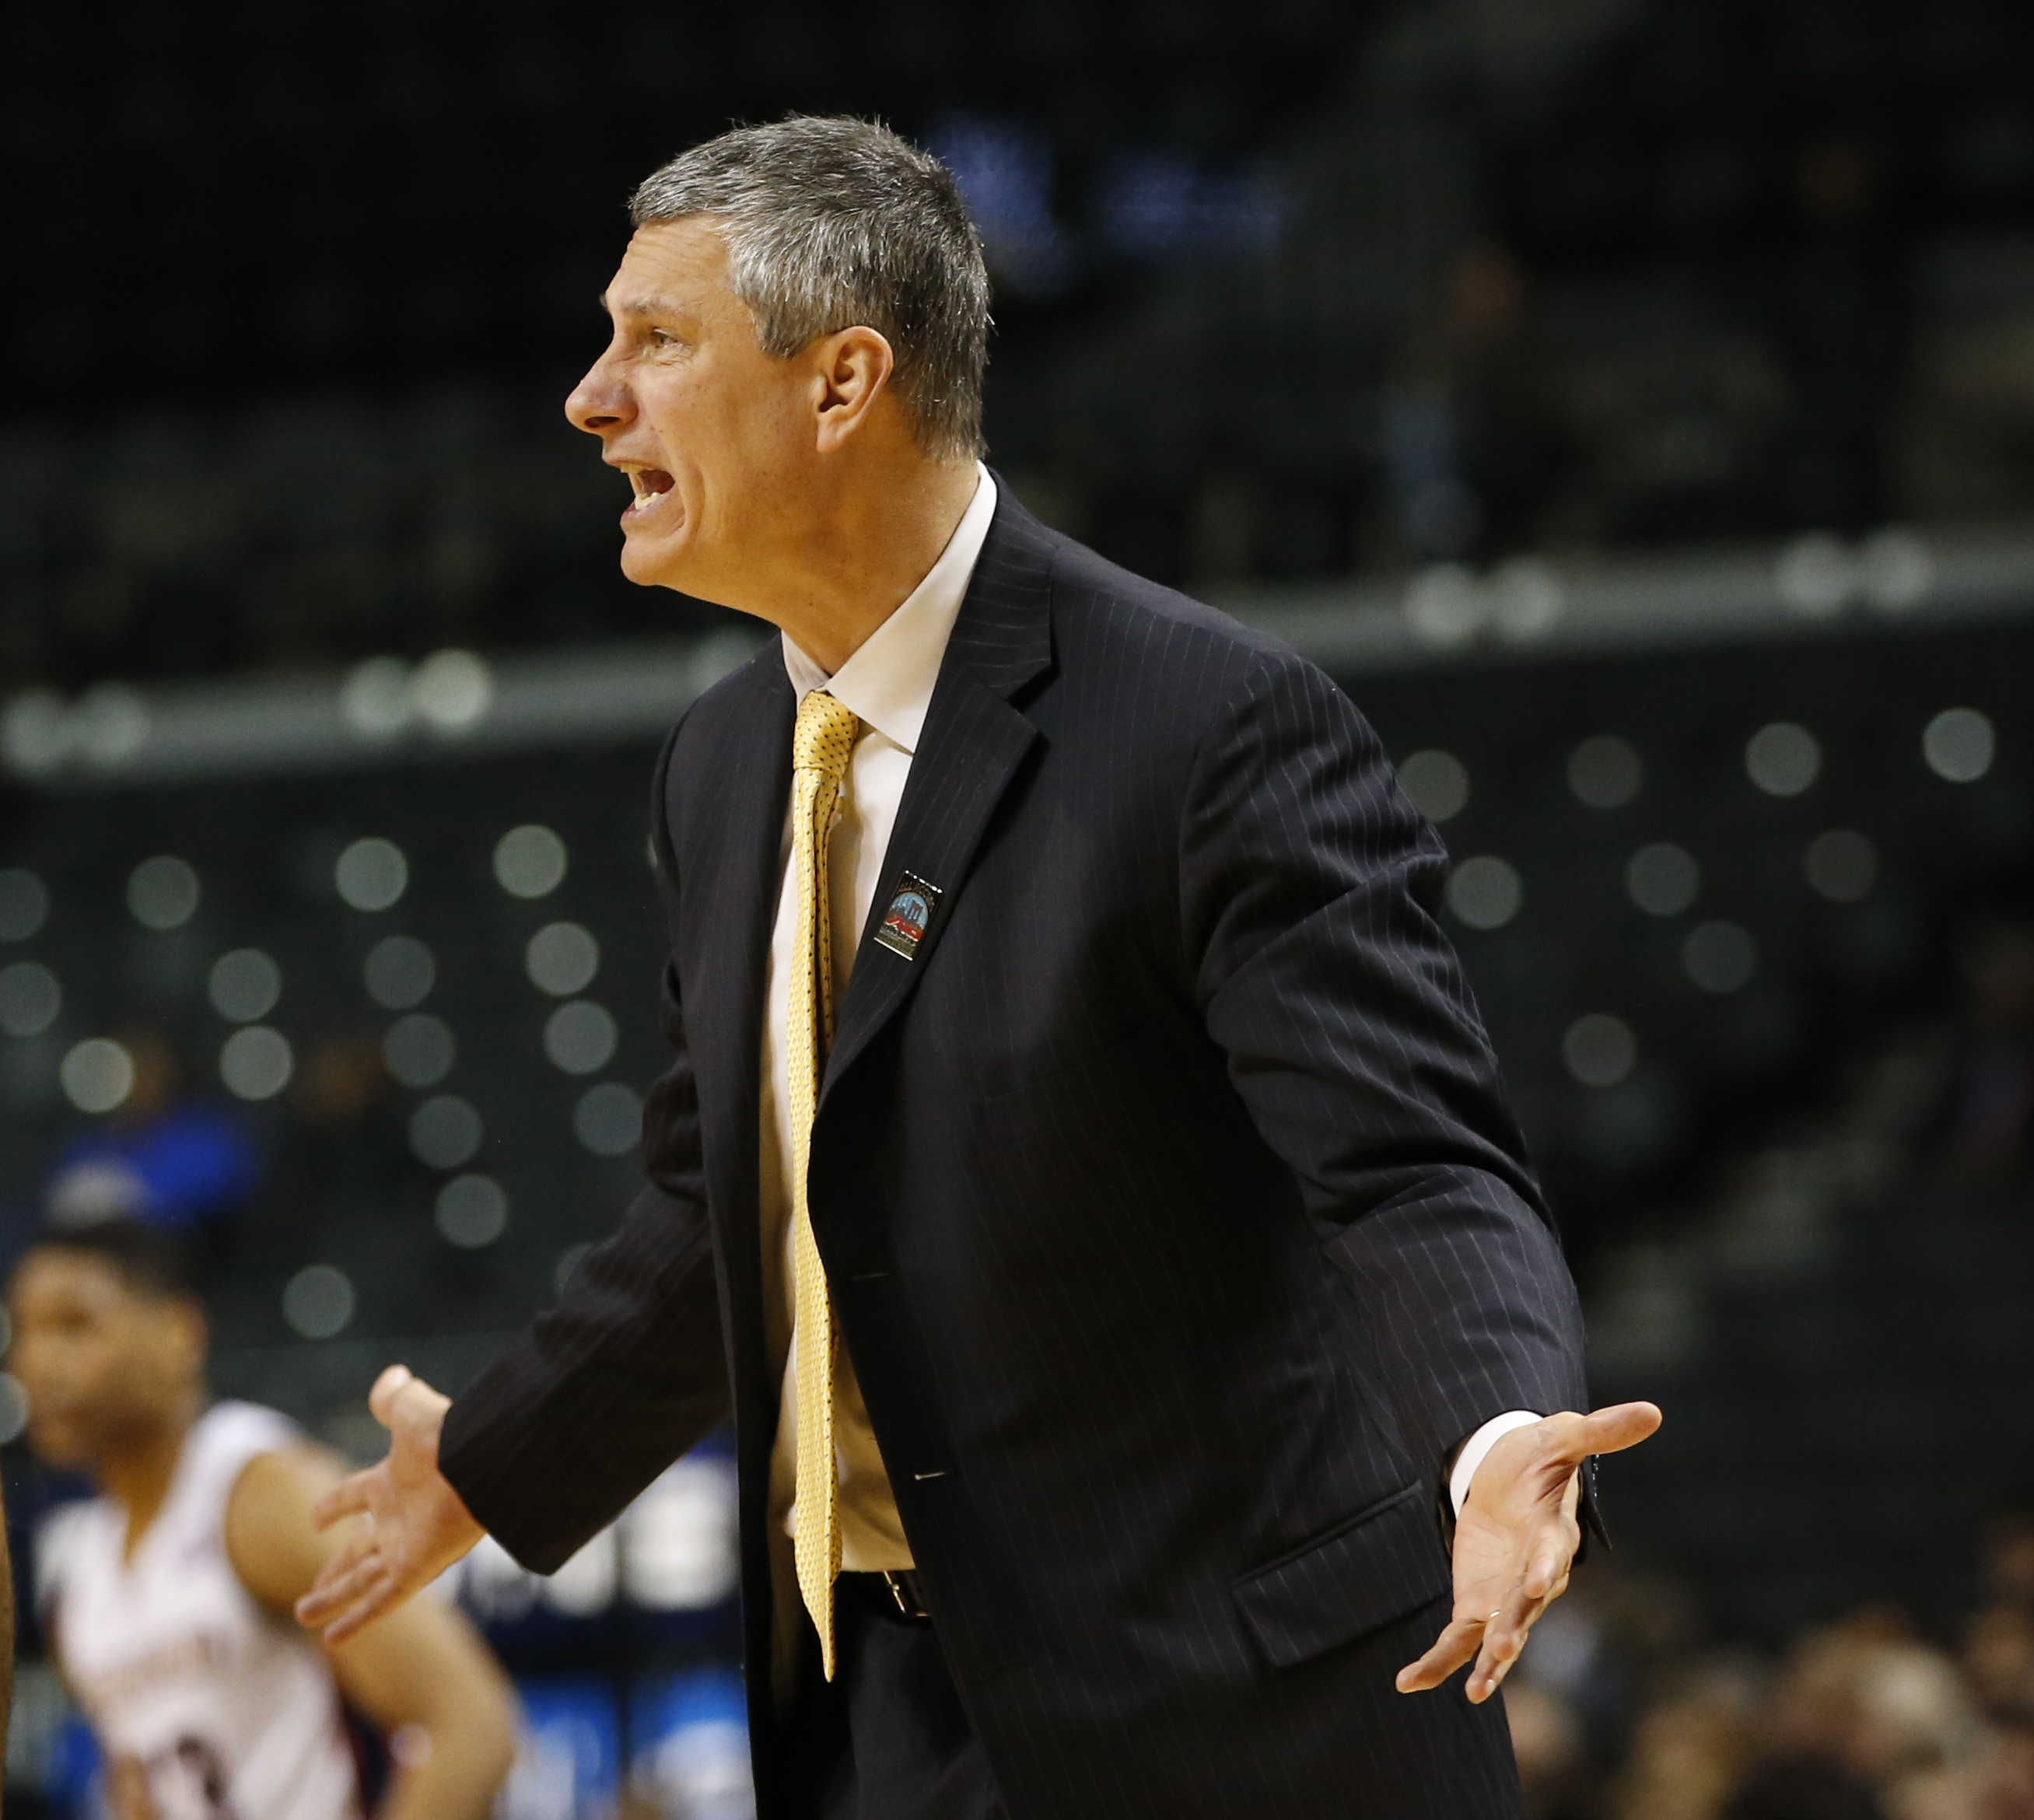 La Salle coach John Giannini gestures toward an official during the first half of the team's NCAA college basketball game against Duquesne in the Atlantic 10 men's tournament, Wednesday, March 9, 2016, in New York. (AP Photo/Kathy Willens)